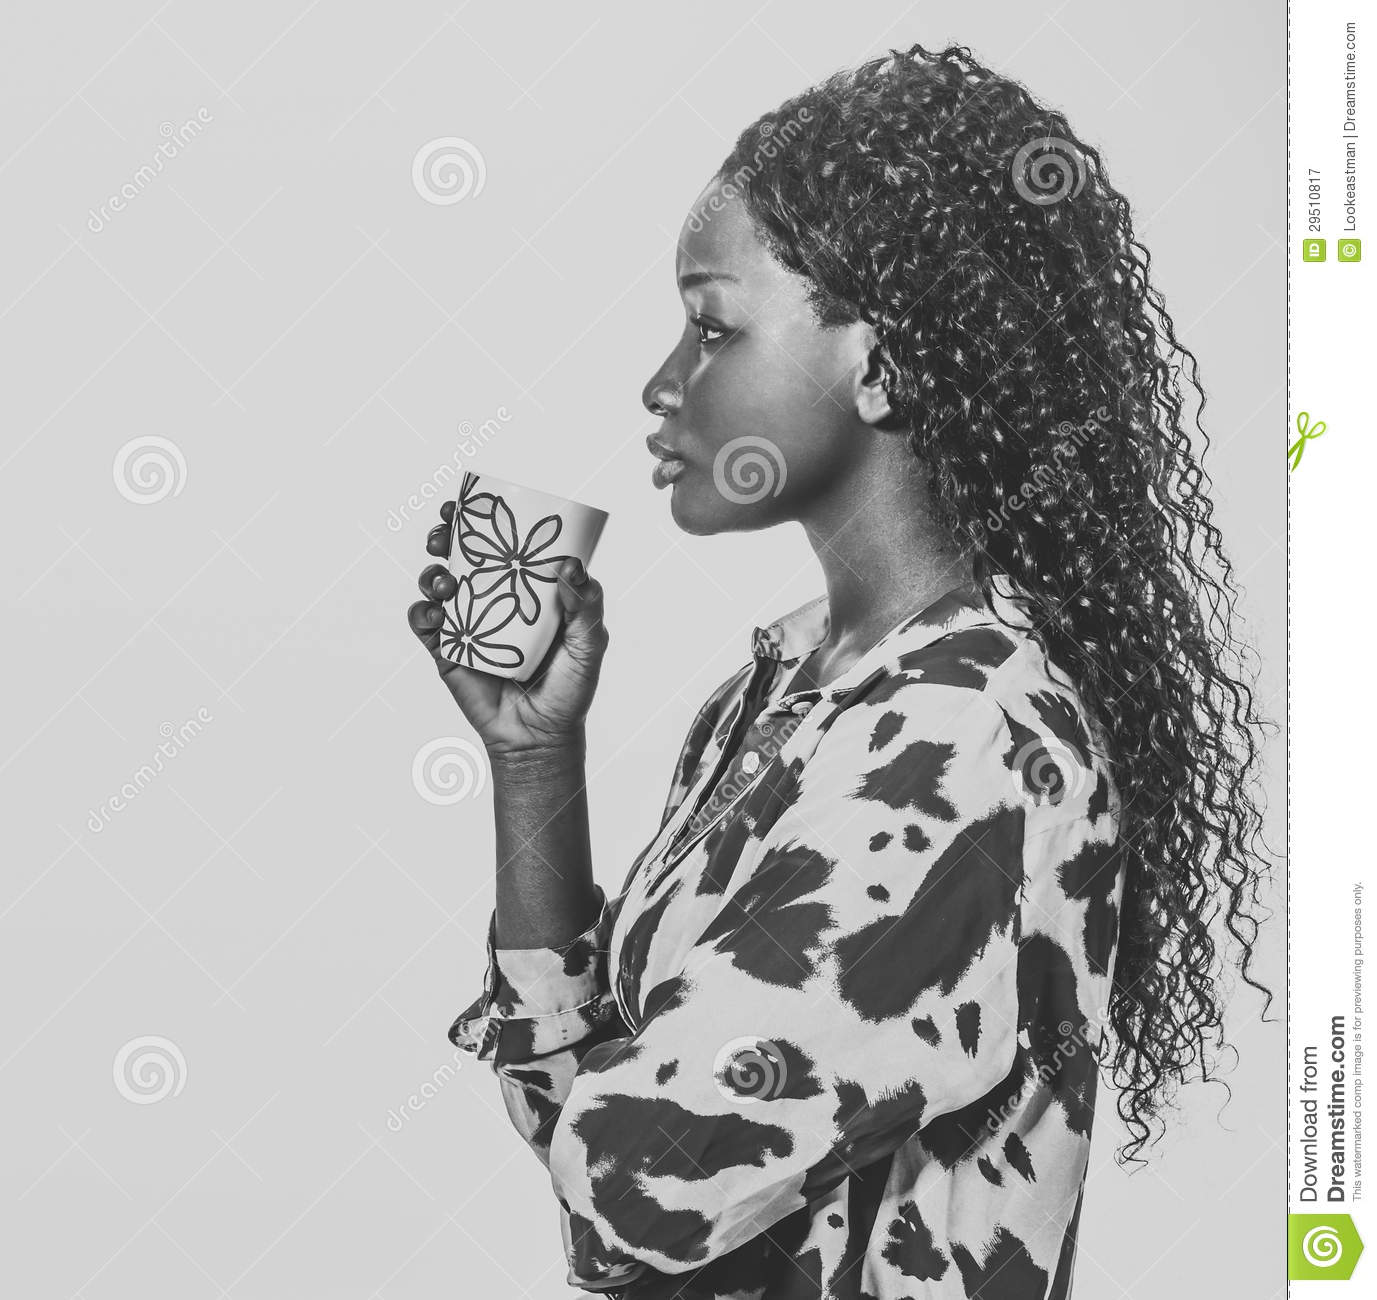 African woman drinking coffee silhouette